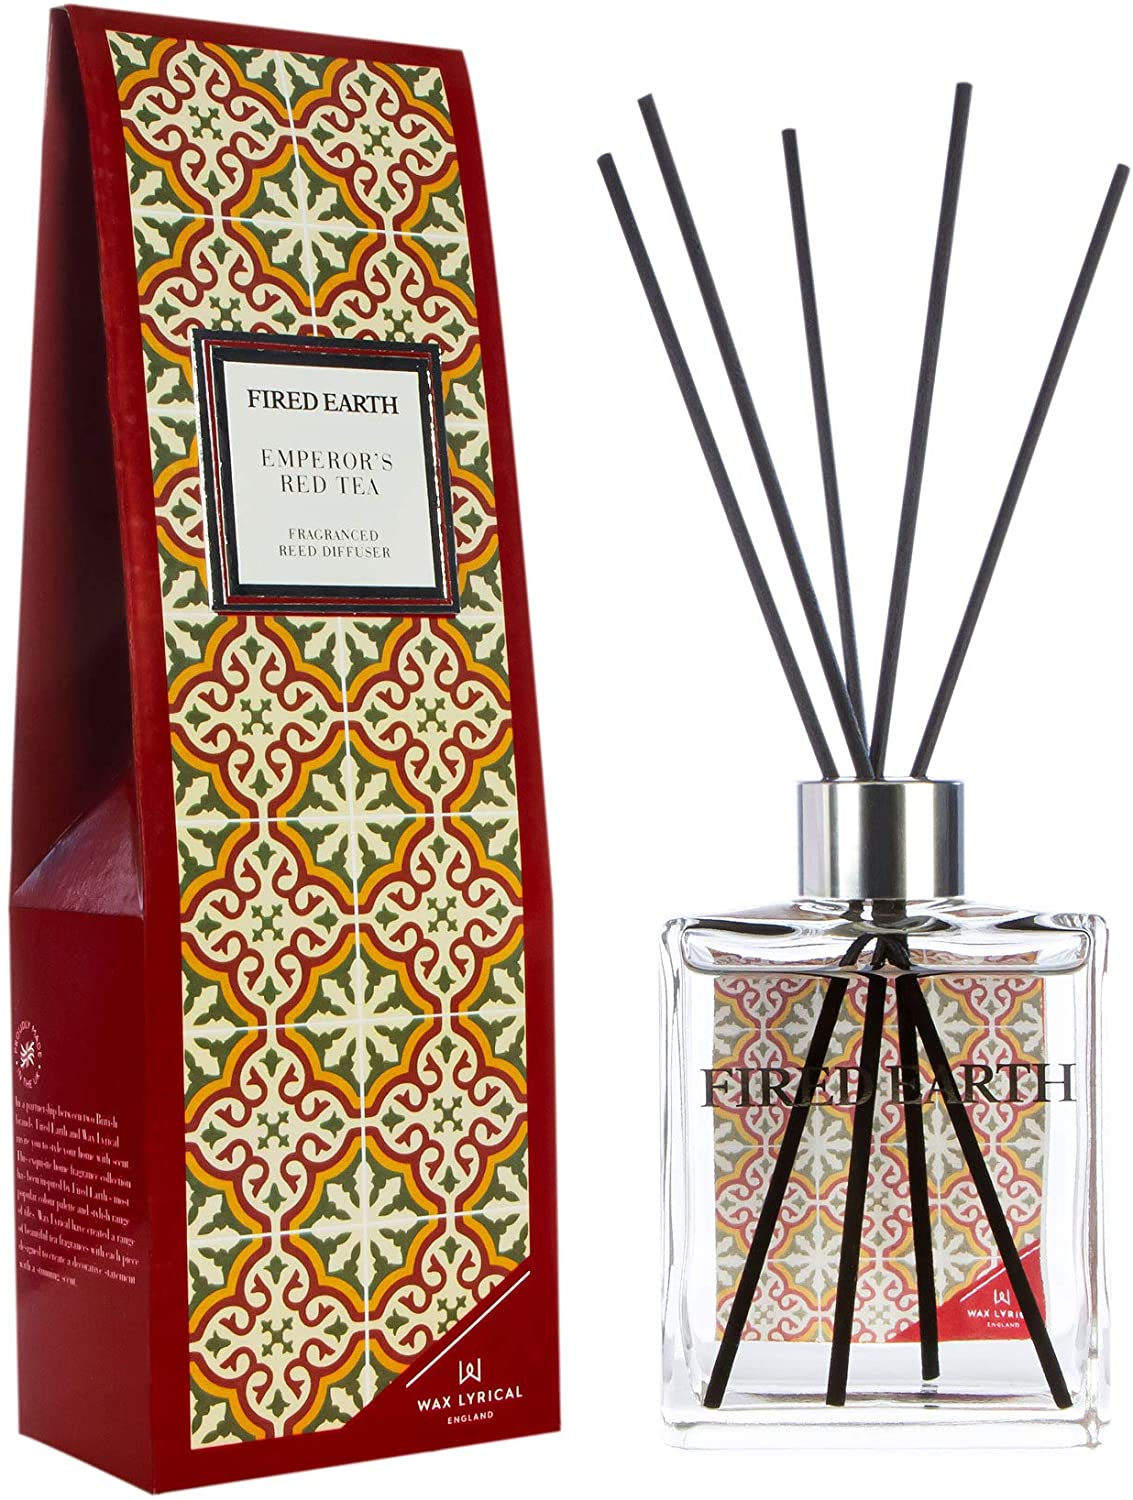 Wax Lyrical Fired Earth Emperors Red Tea Reed Diffuser, 180ml, Large